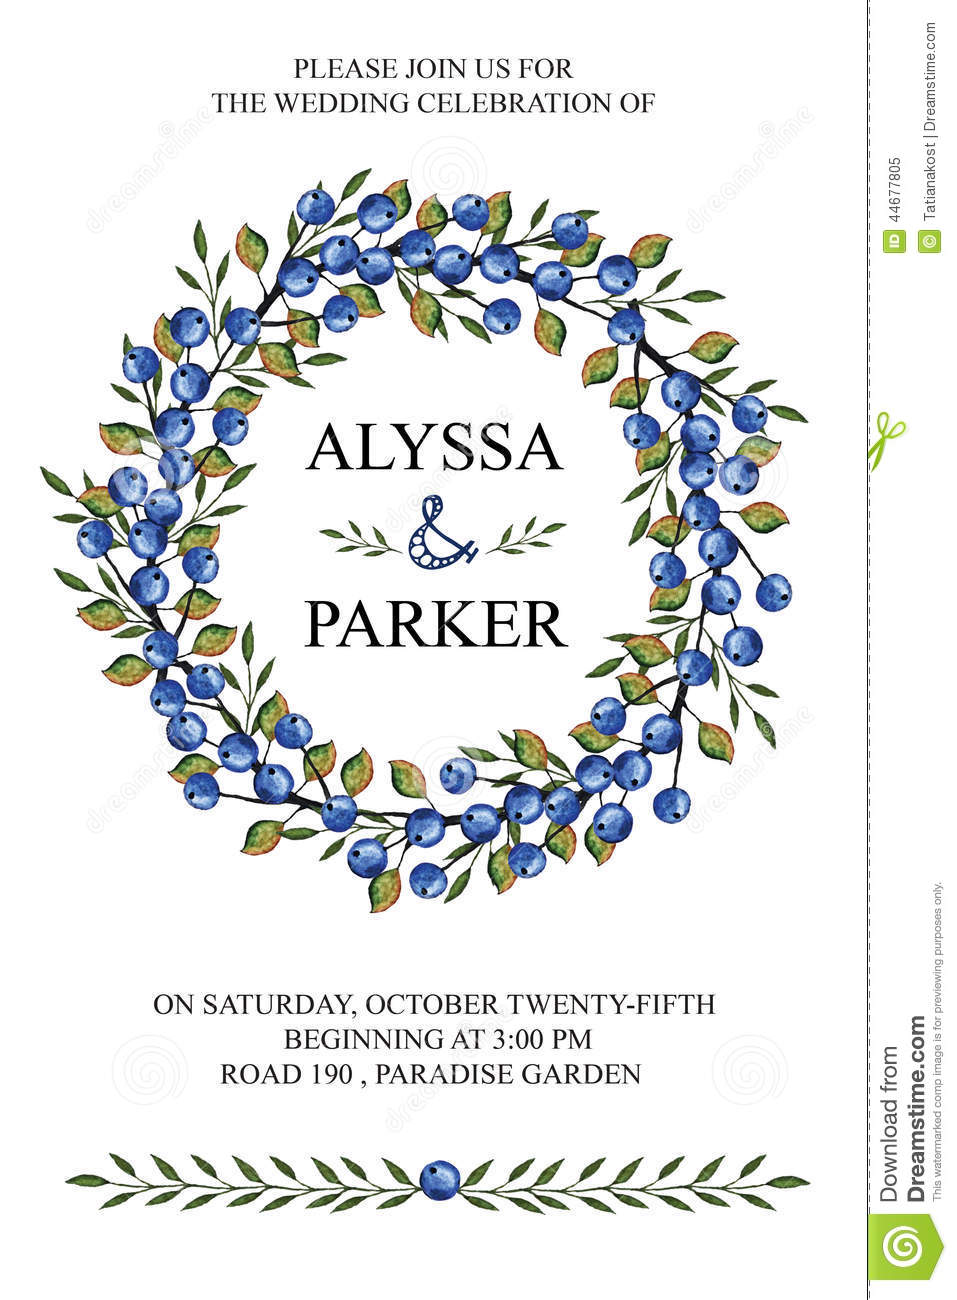 wedding invitationwatercolor wreathblue berries